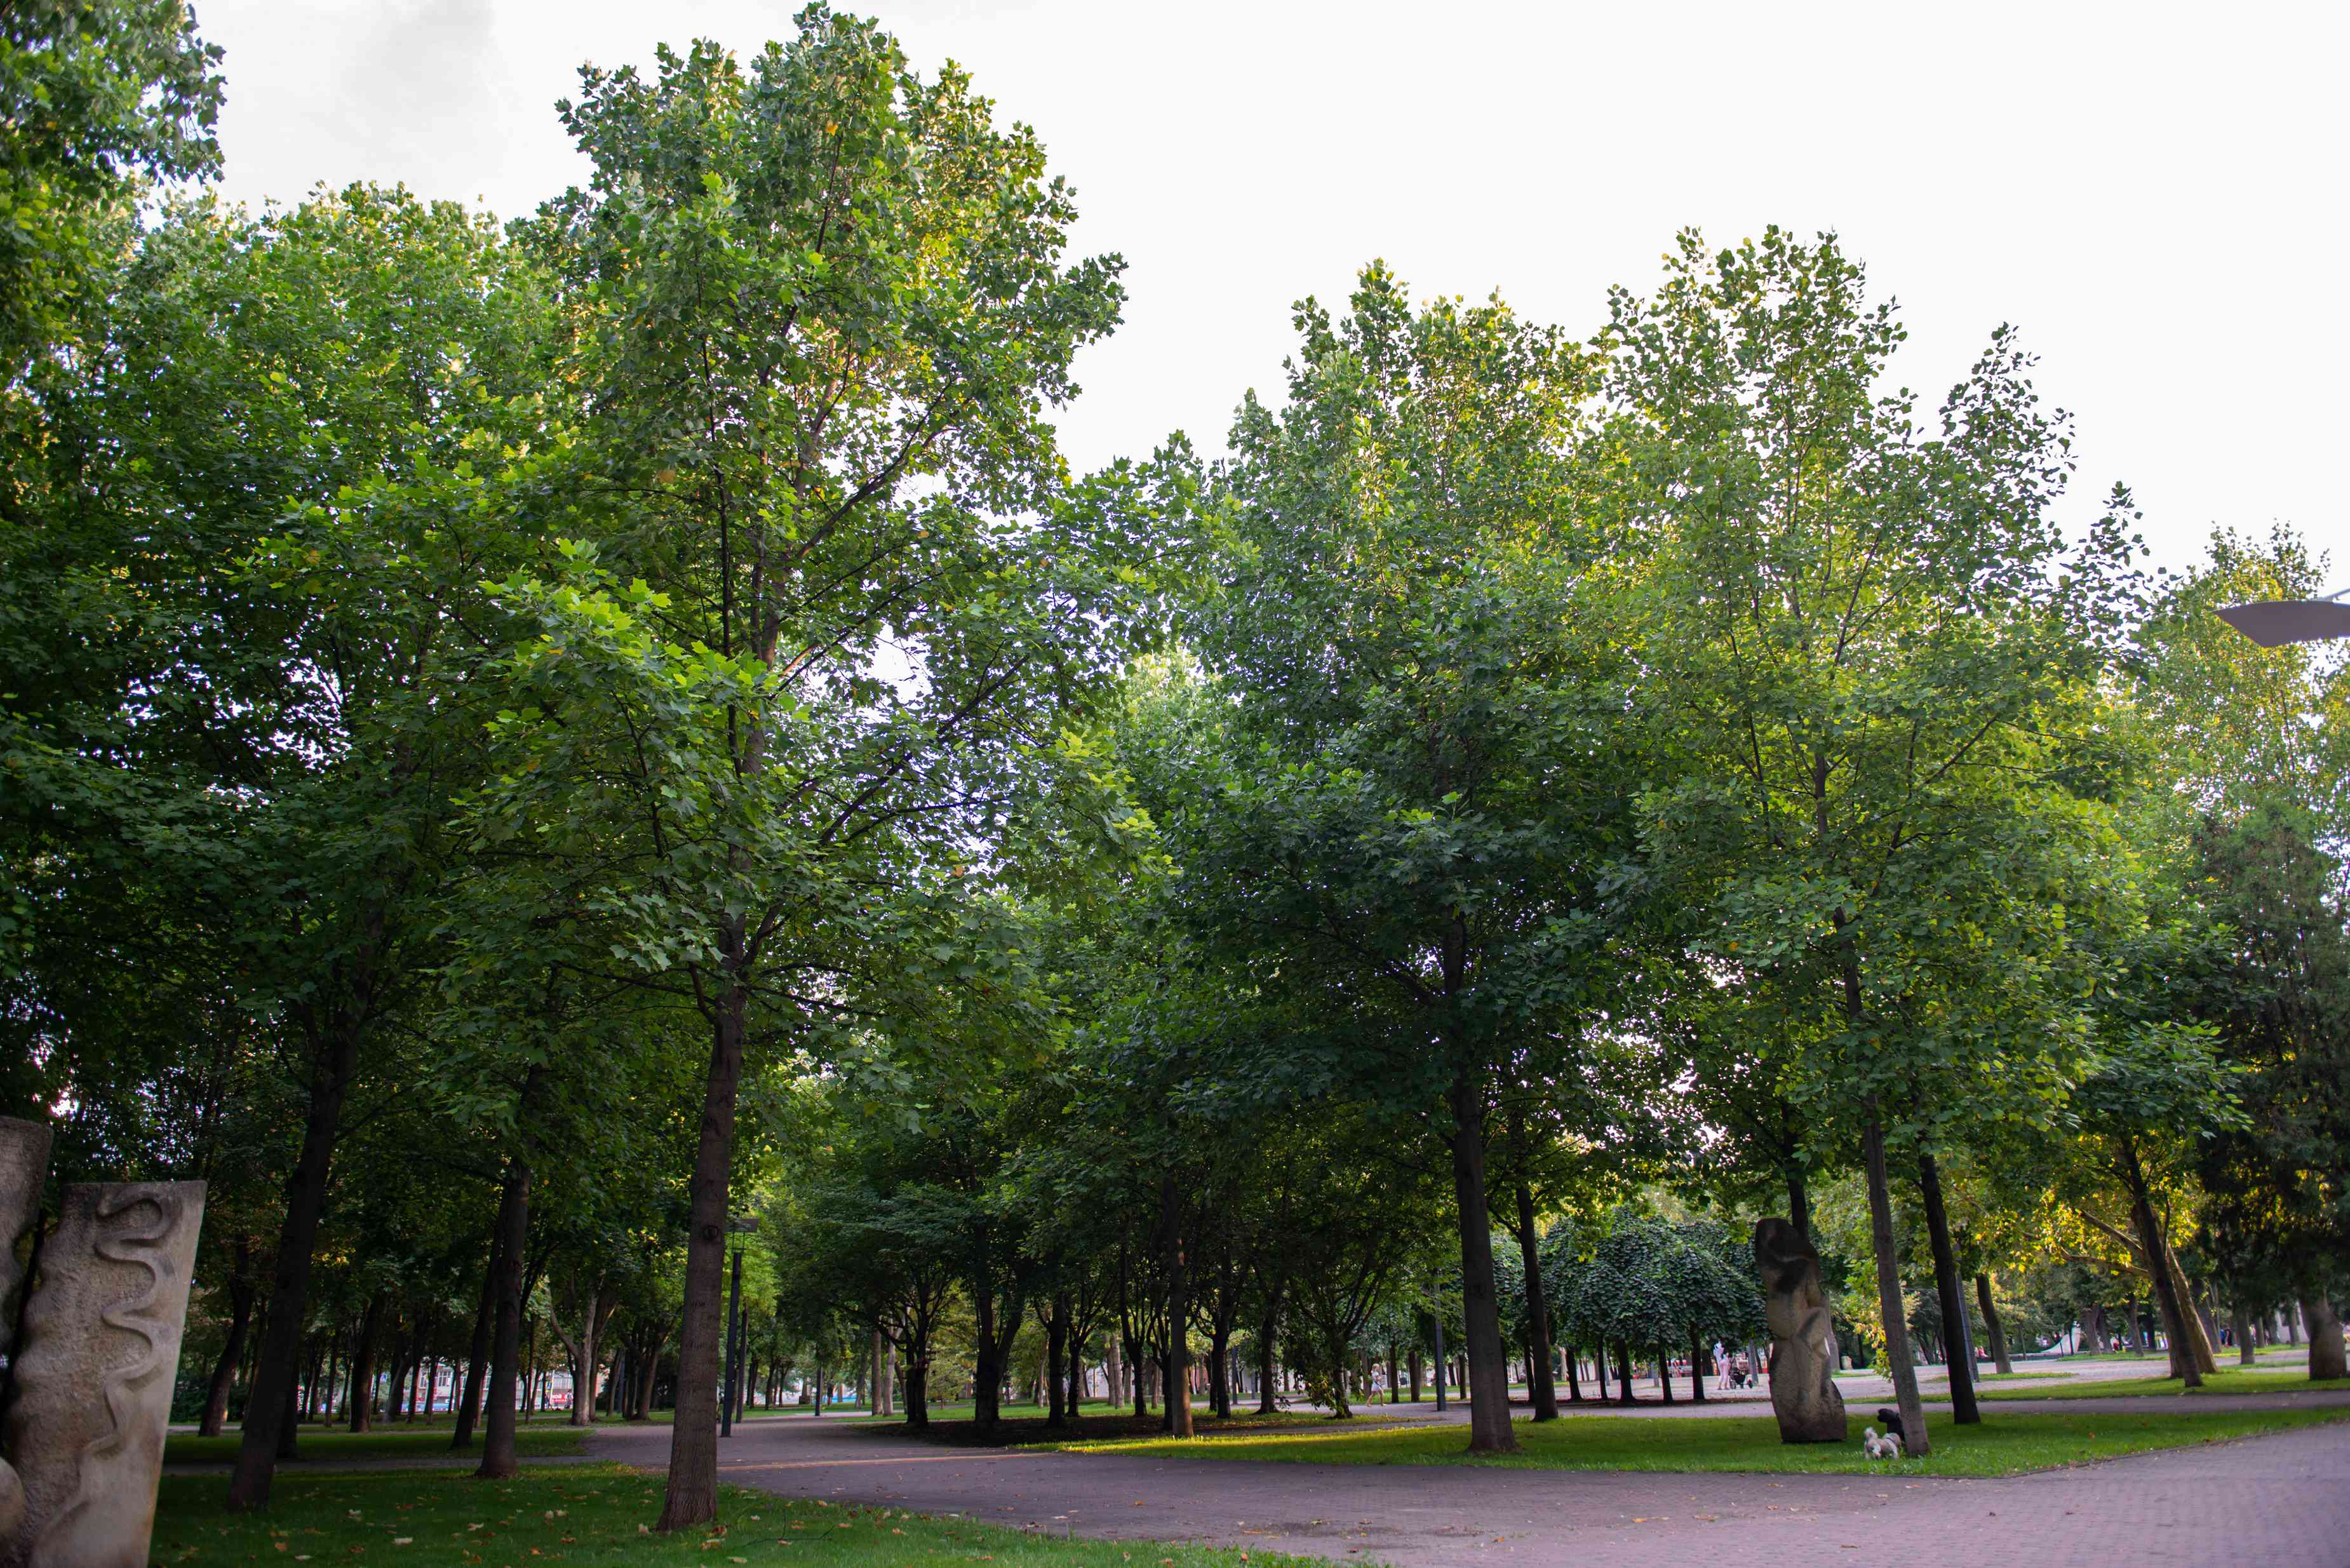 Tulip trees with tall and thin trunks with yellow-green leaves in park